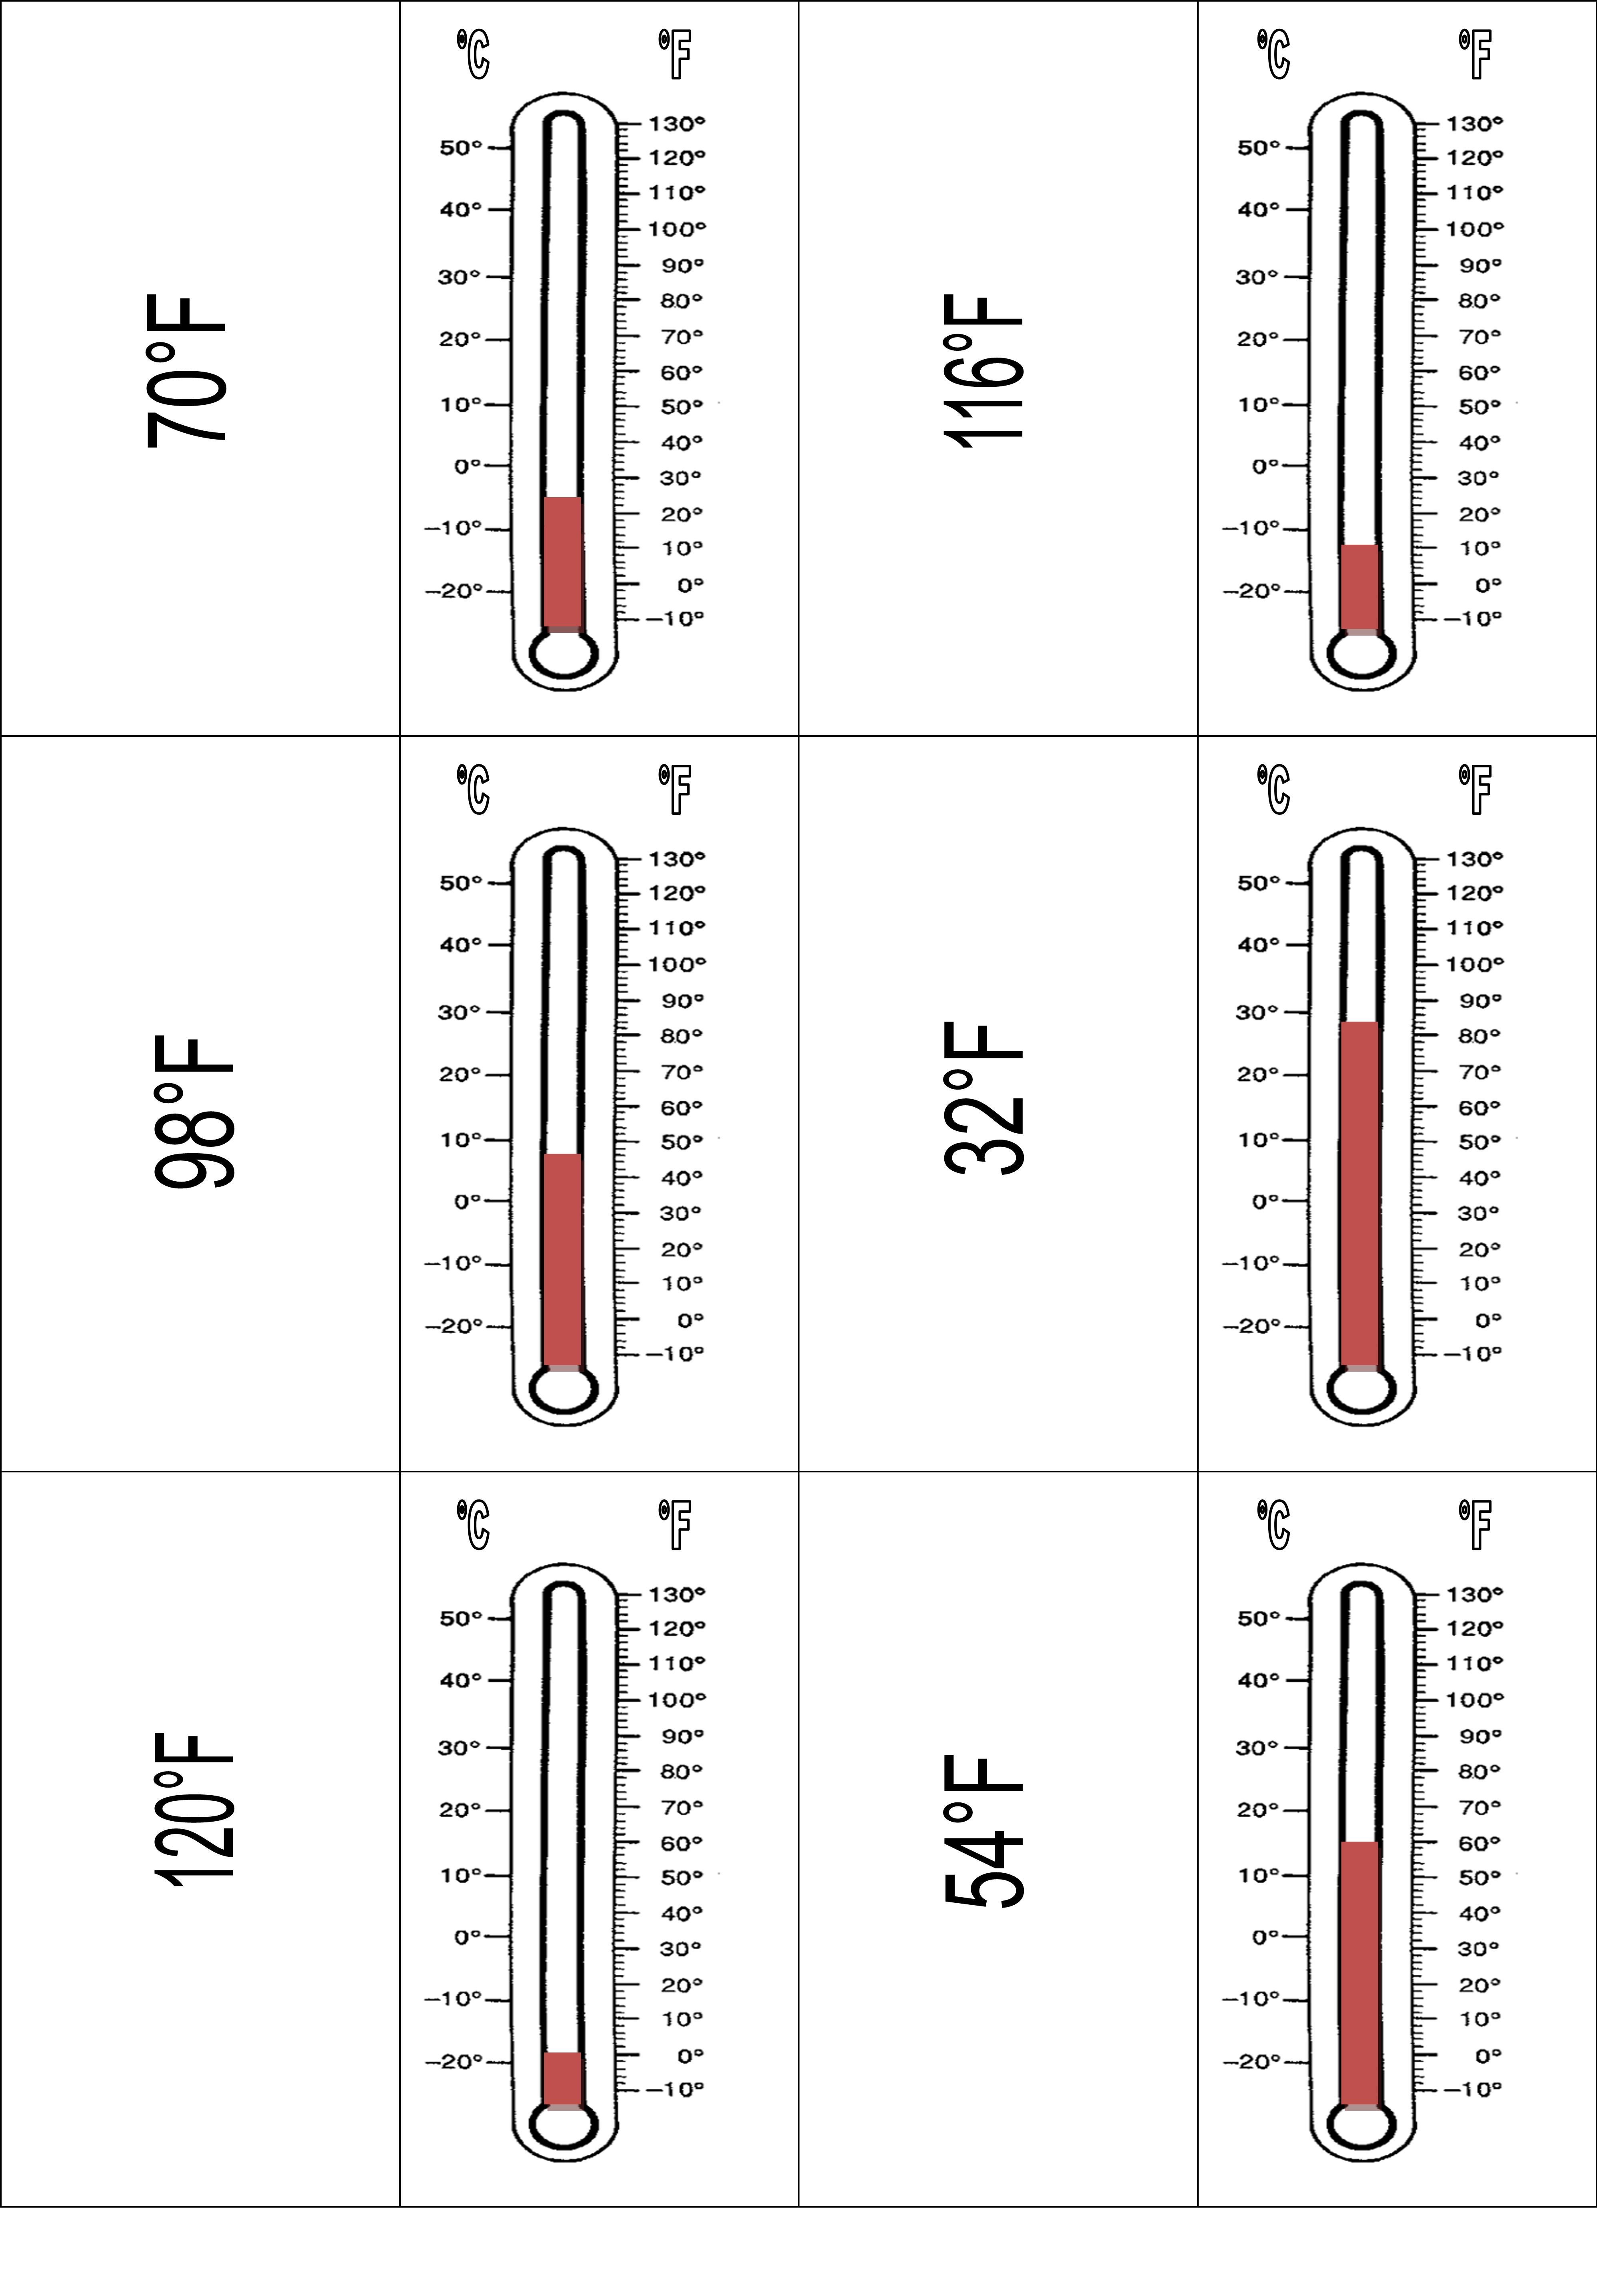 Part 2 Of 2 Temperature Matching Game